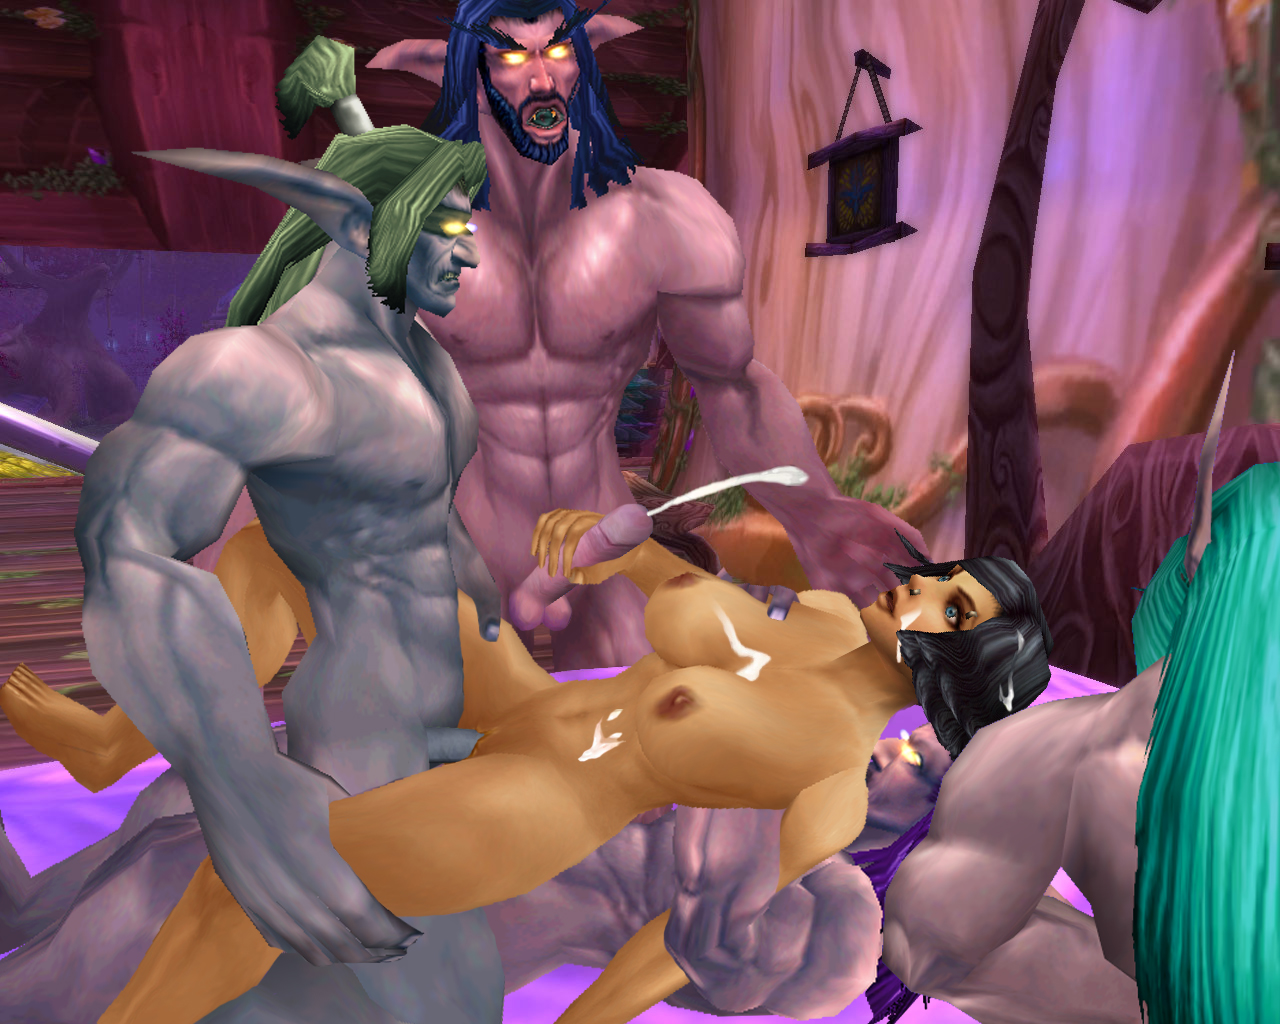 Orcs fucking elfs world of warcraft naked thumbs